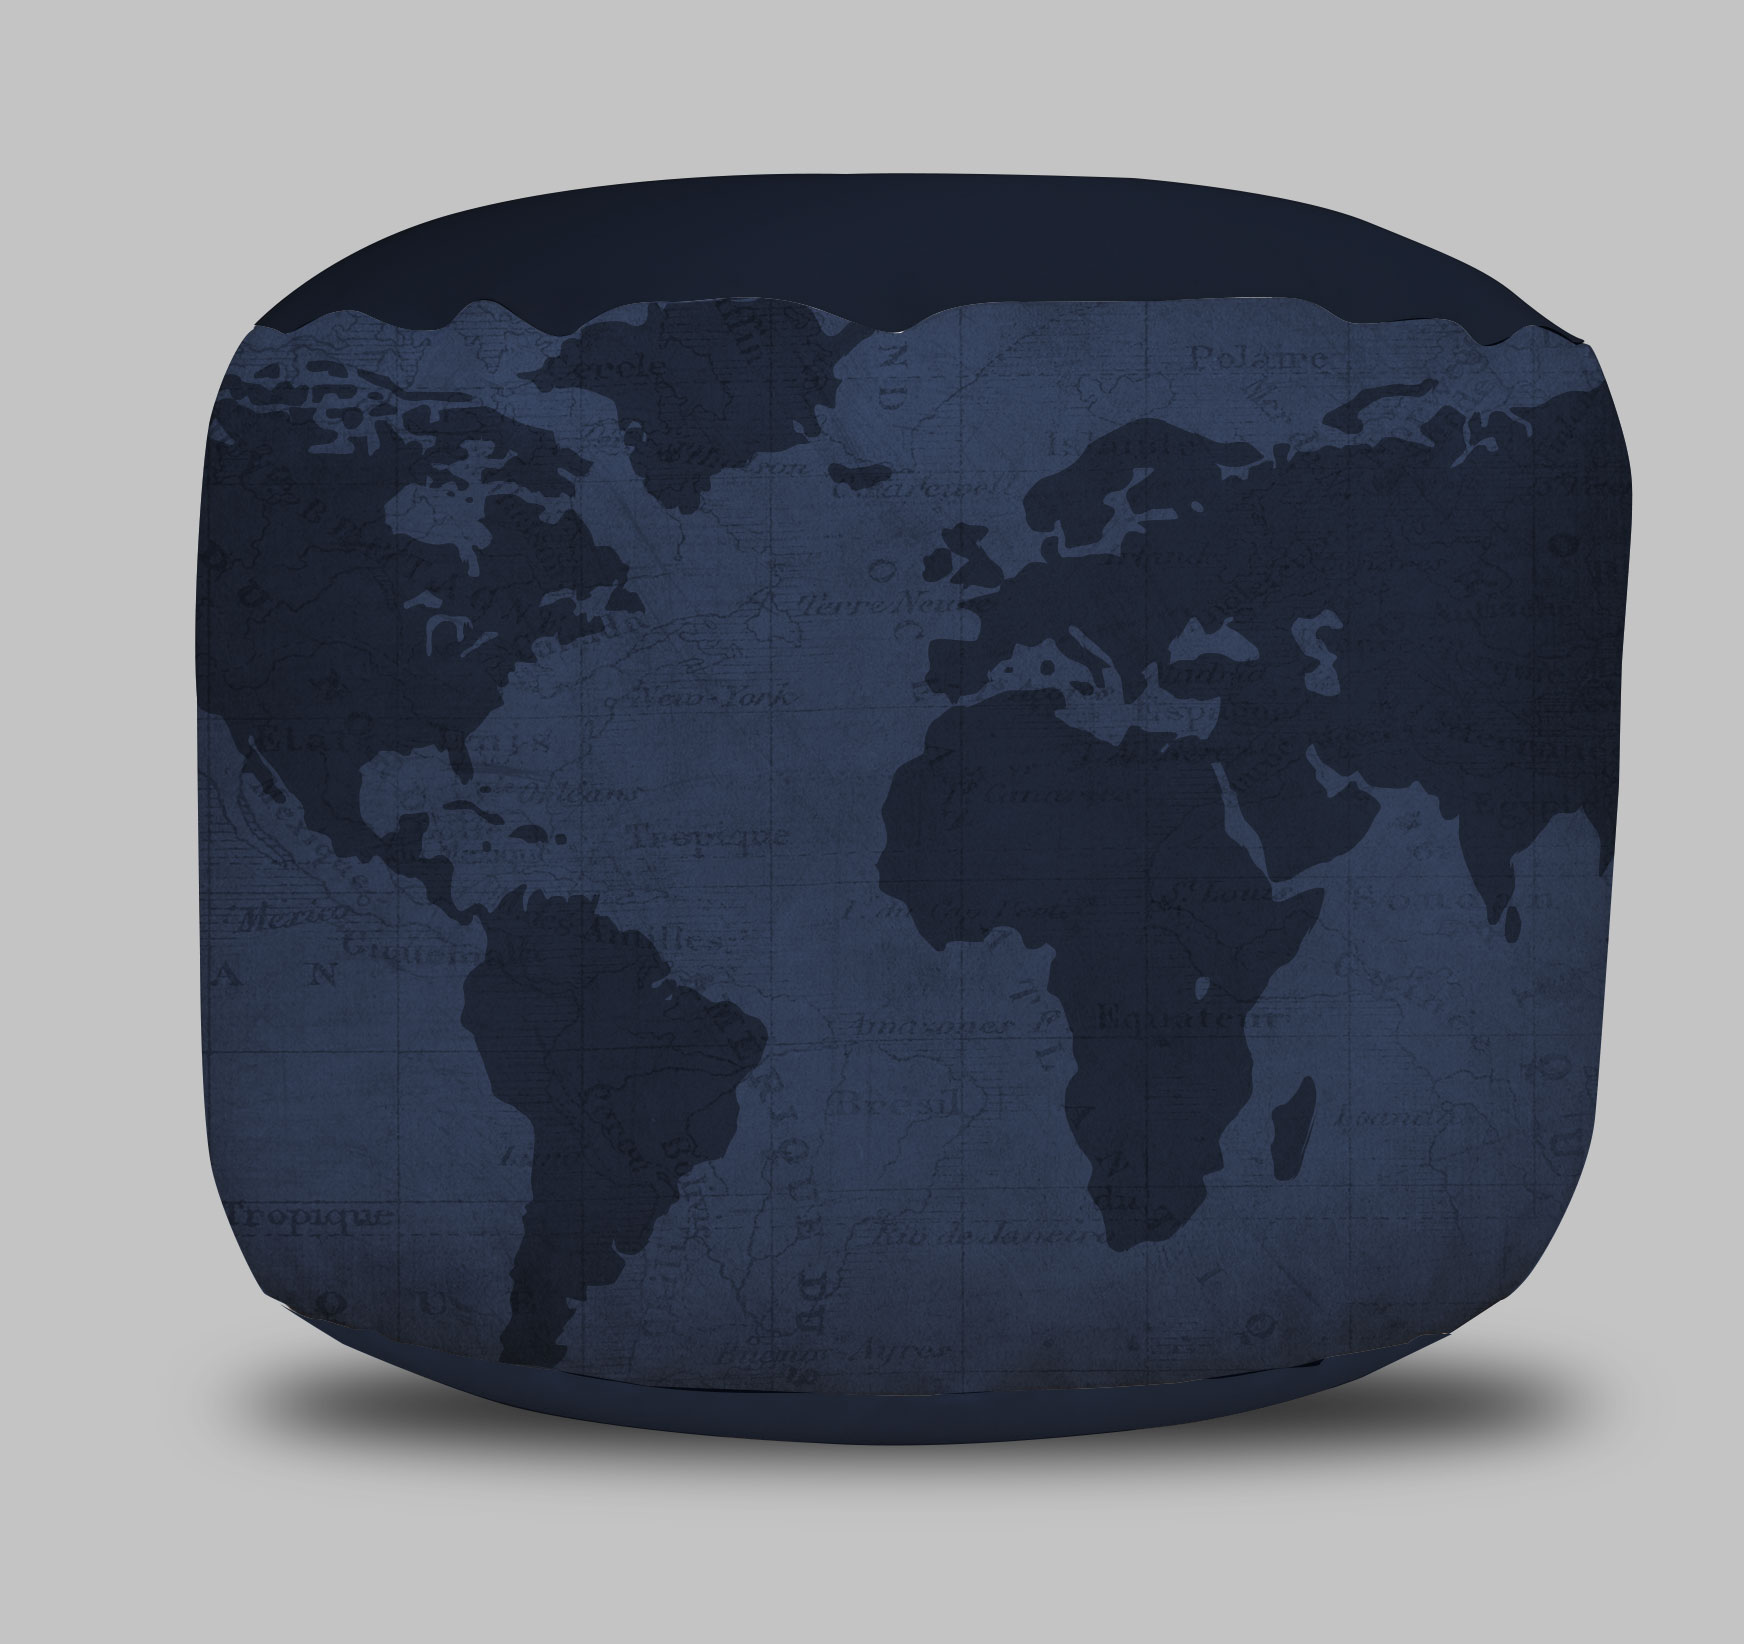 World Map Round Pouf Ottoman in Navy Blue- Project Cottage